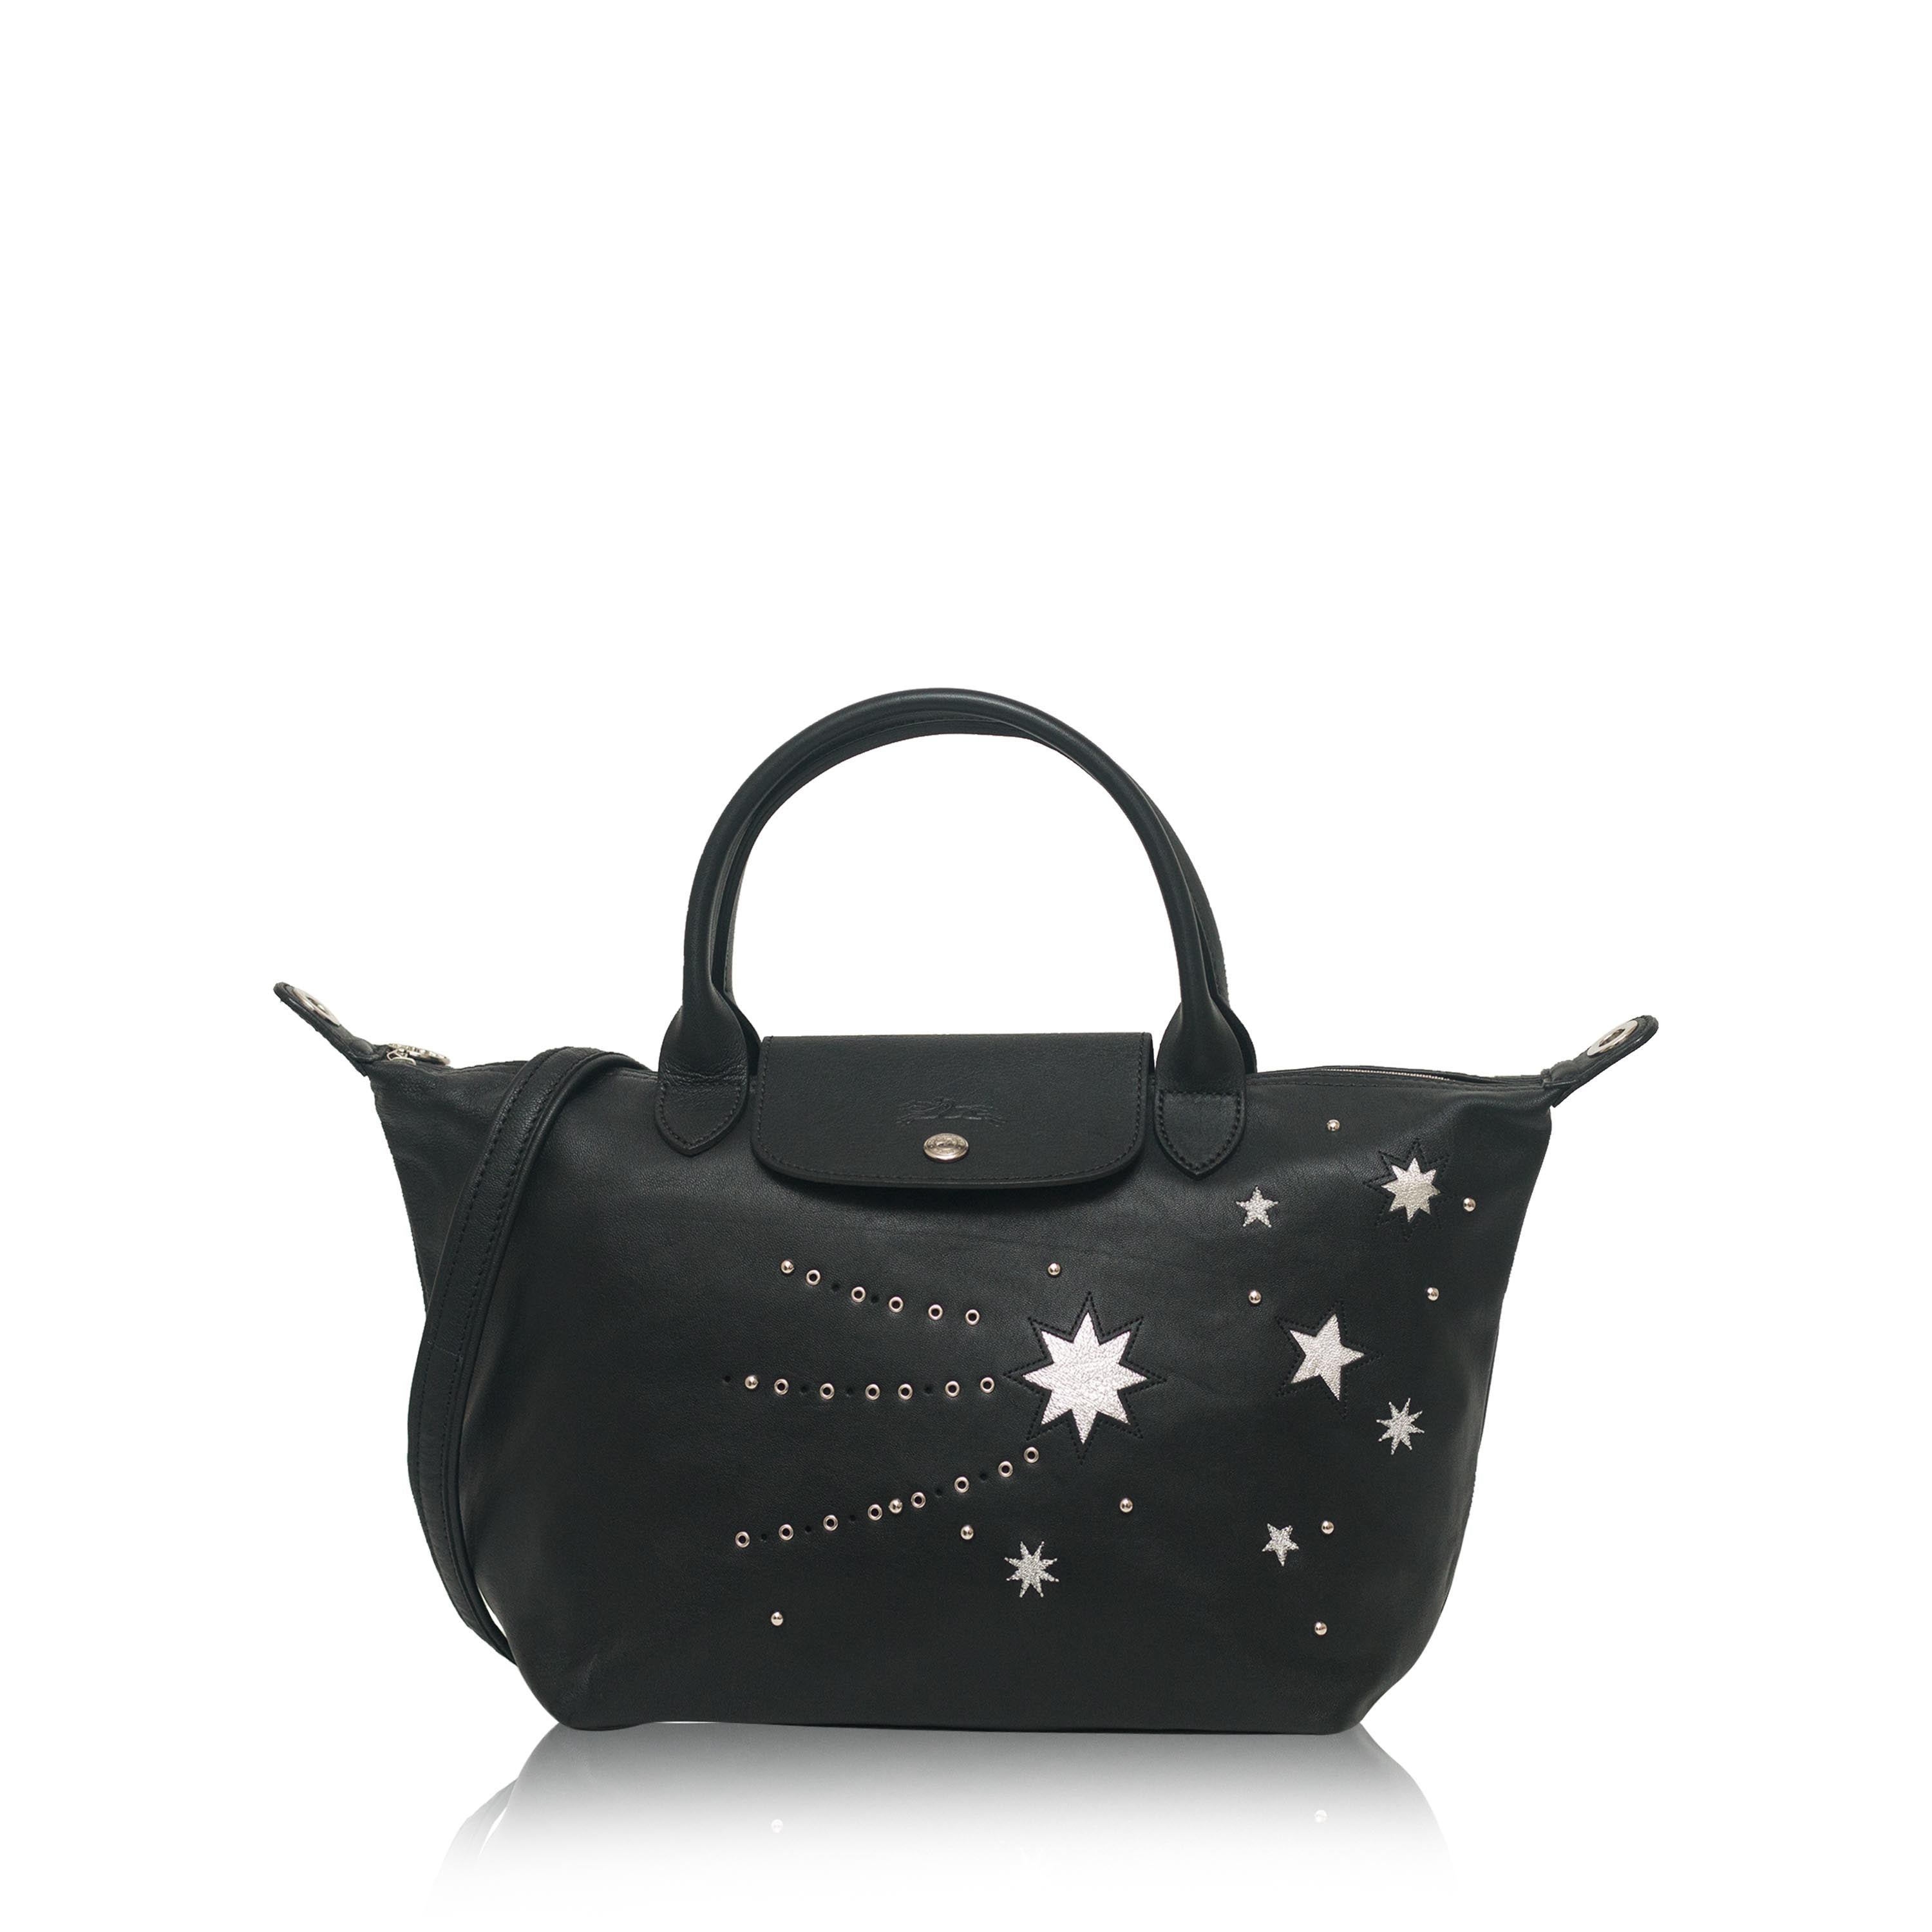 Longchamp Le Pliage Cuir Etoile Star Small Satchel Leather Black